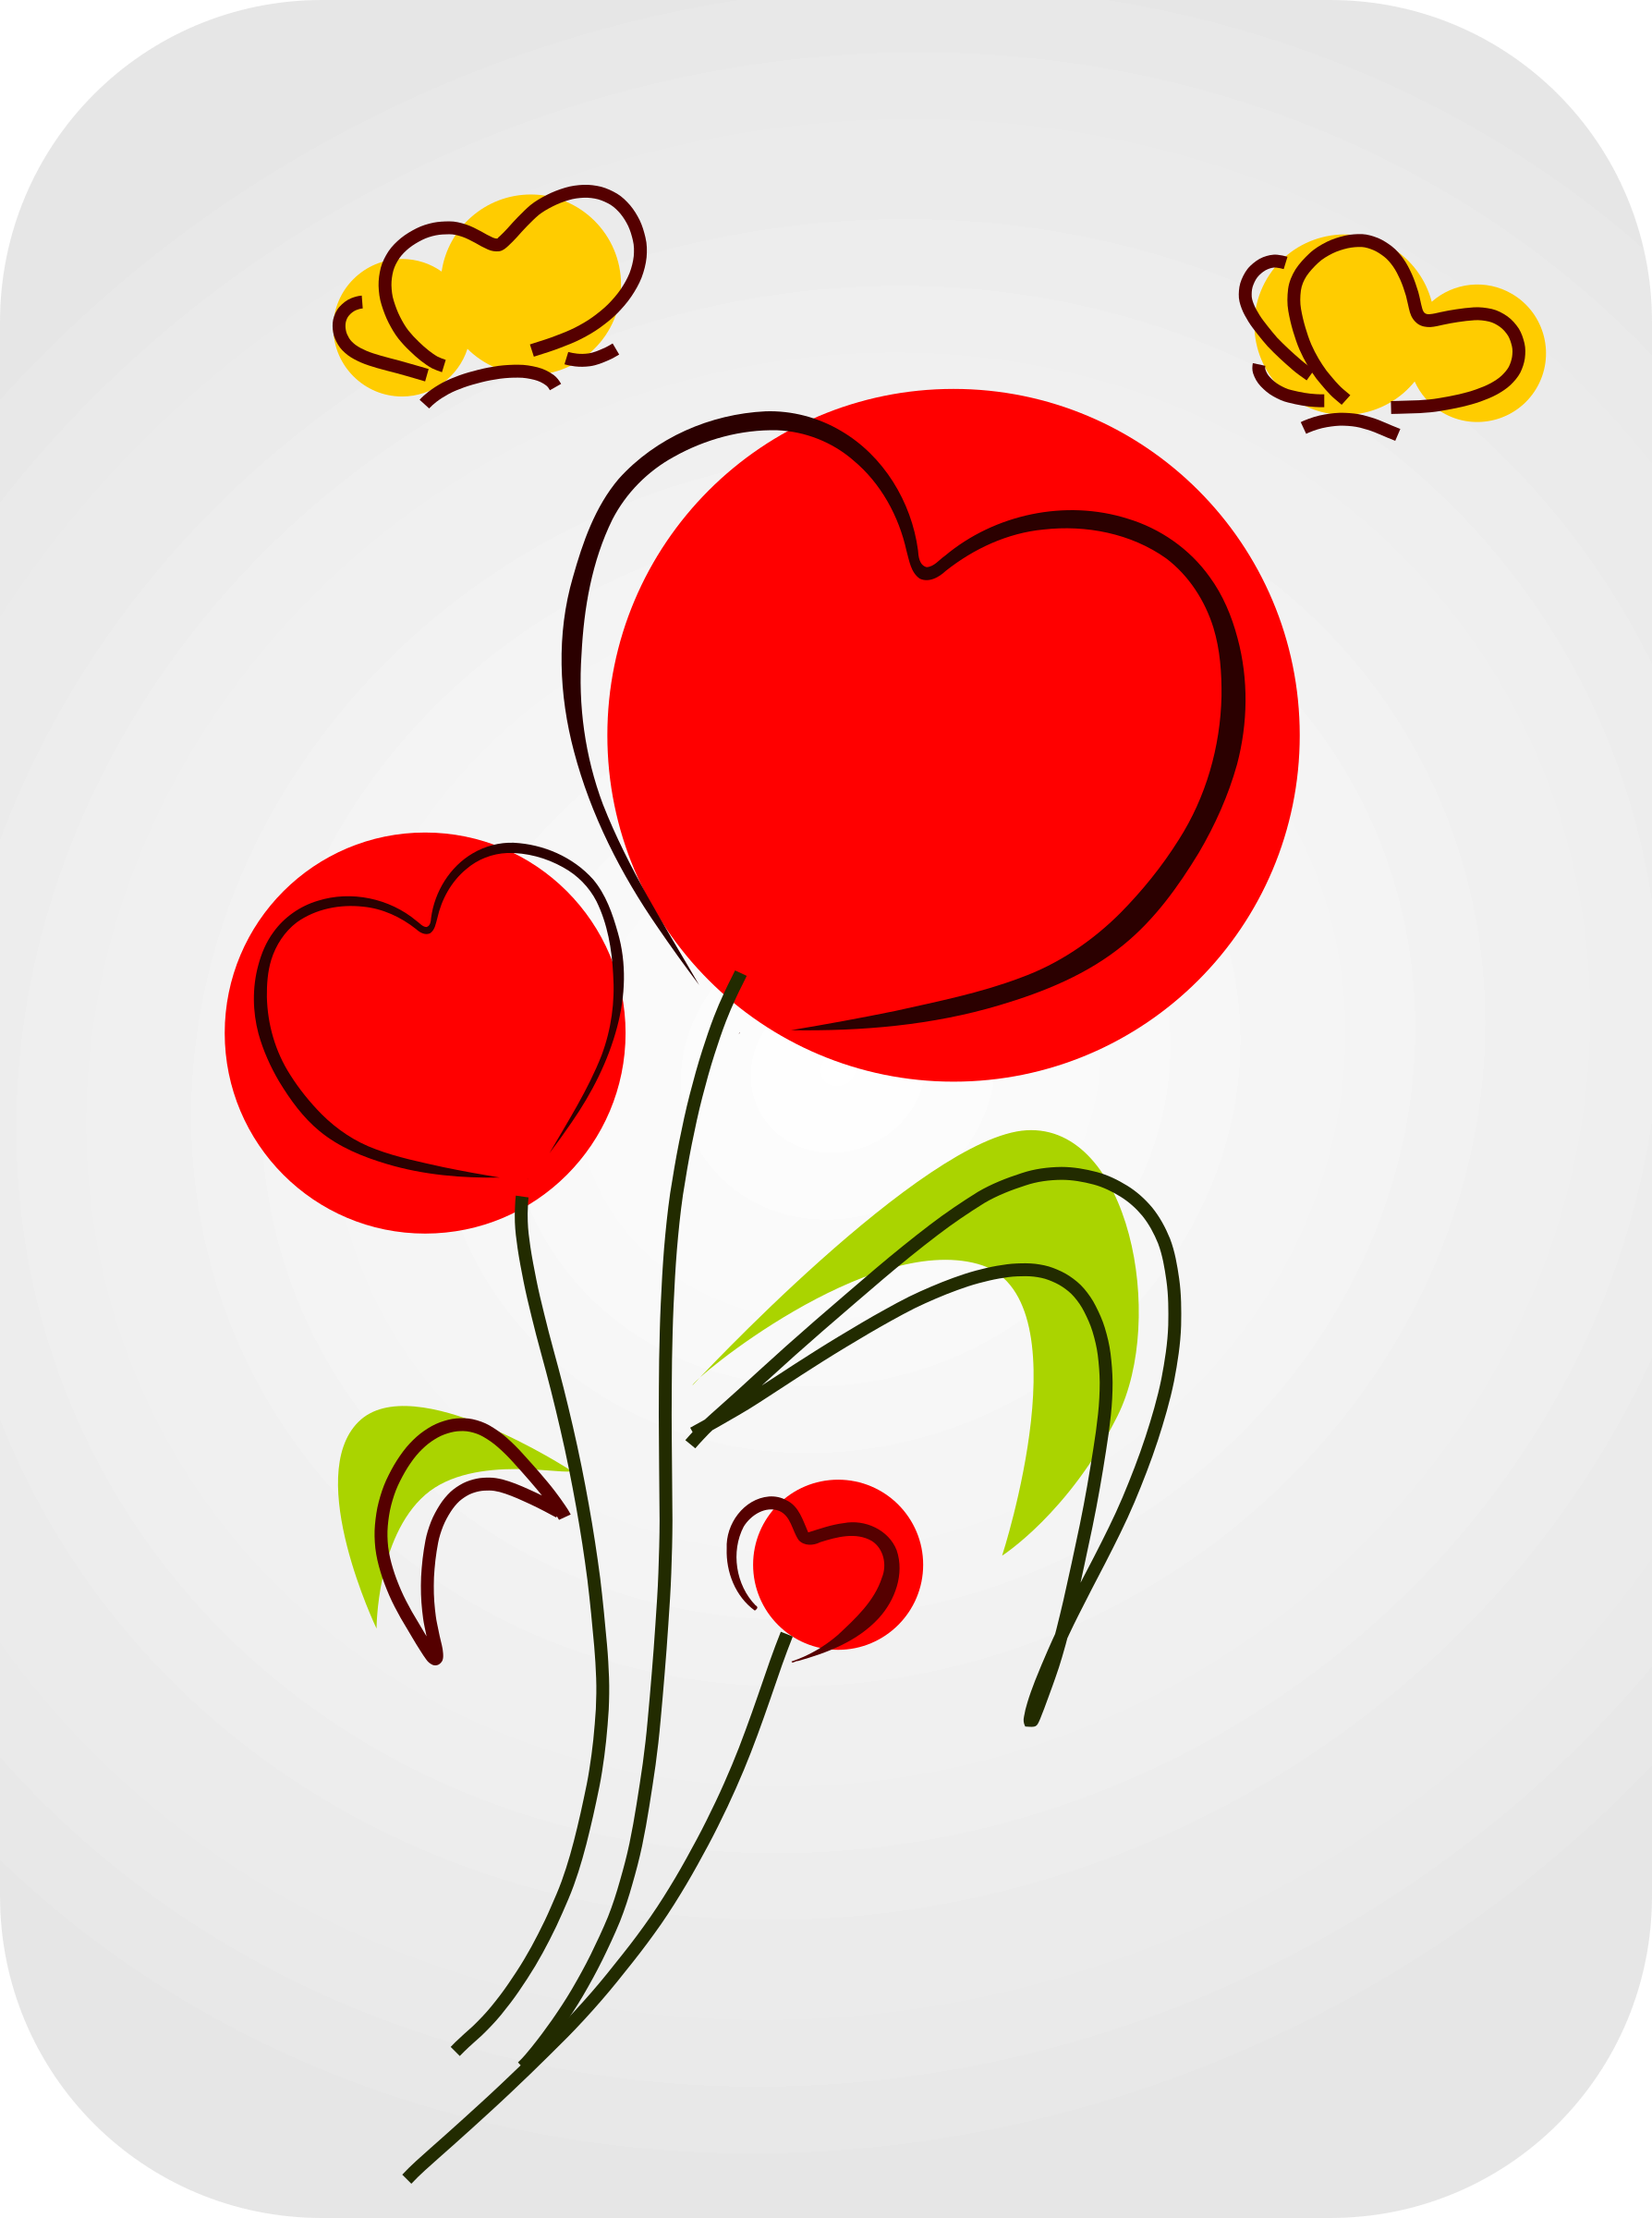 Heart with flower clipart vector royalty free Clipart Hearts And Flowers - ClipArt Best vector royalty free